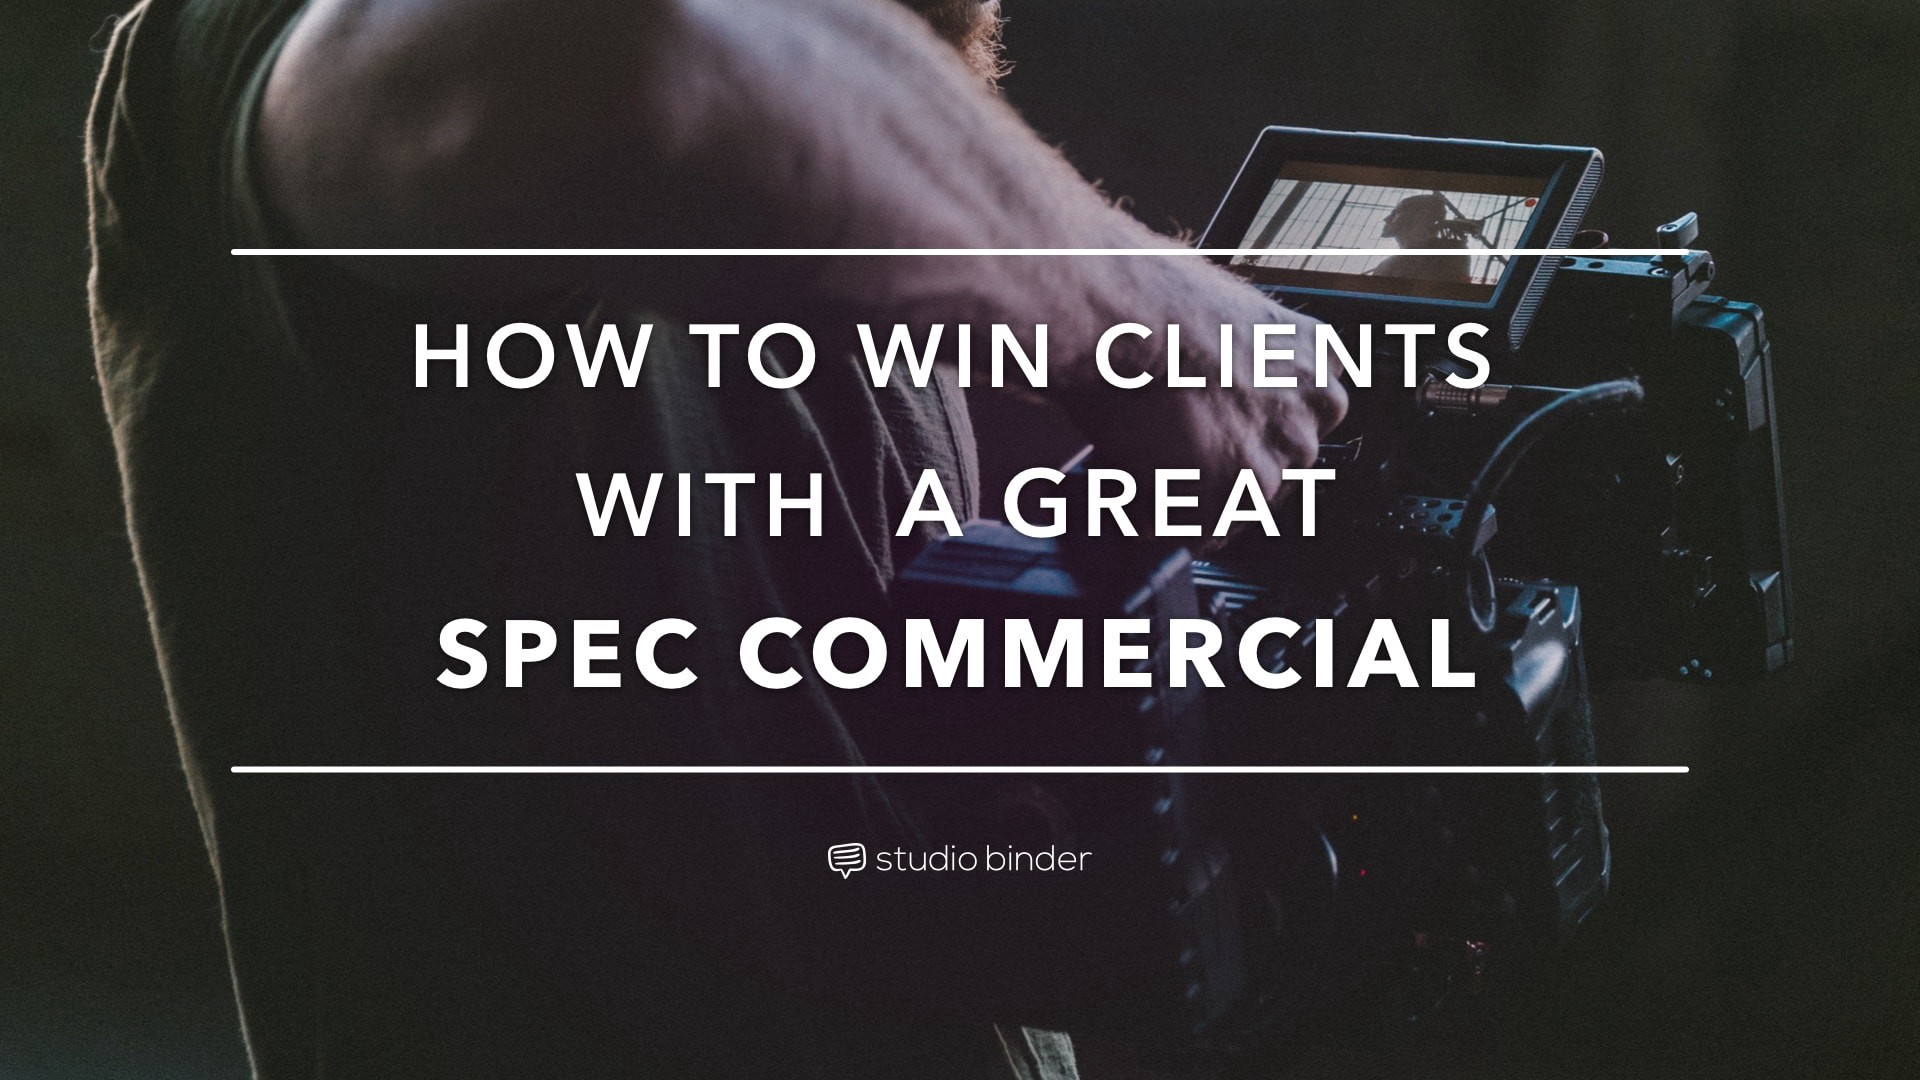 win clients with a great spec commercial with spec ad examples